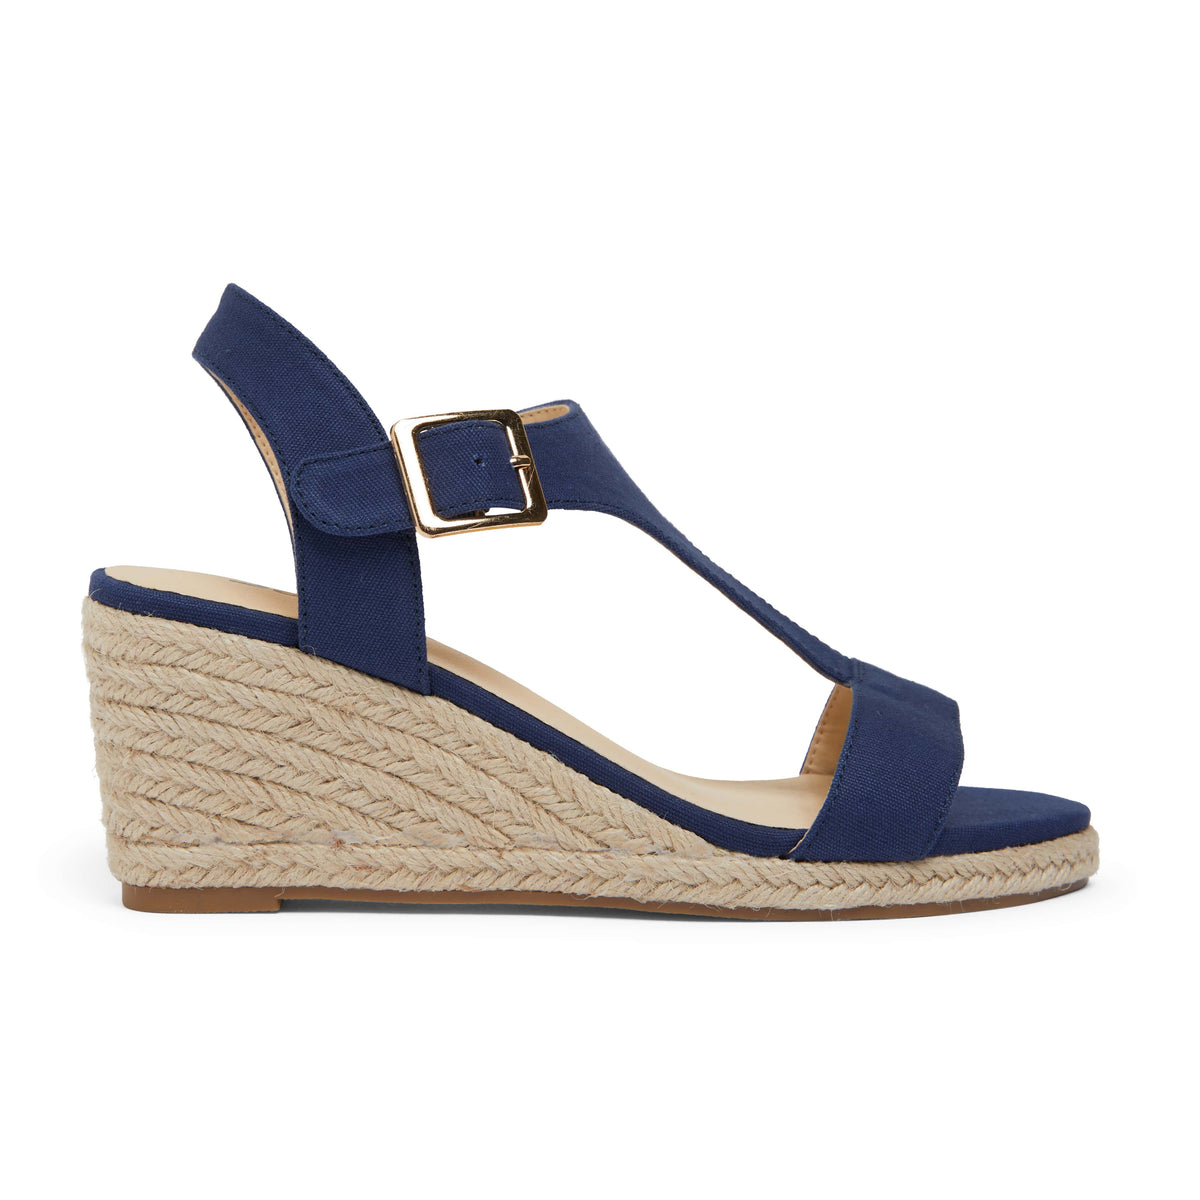 Anchor Espadrille in Navy Fabric